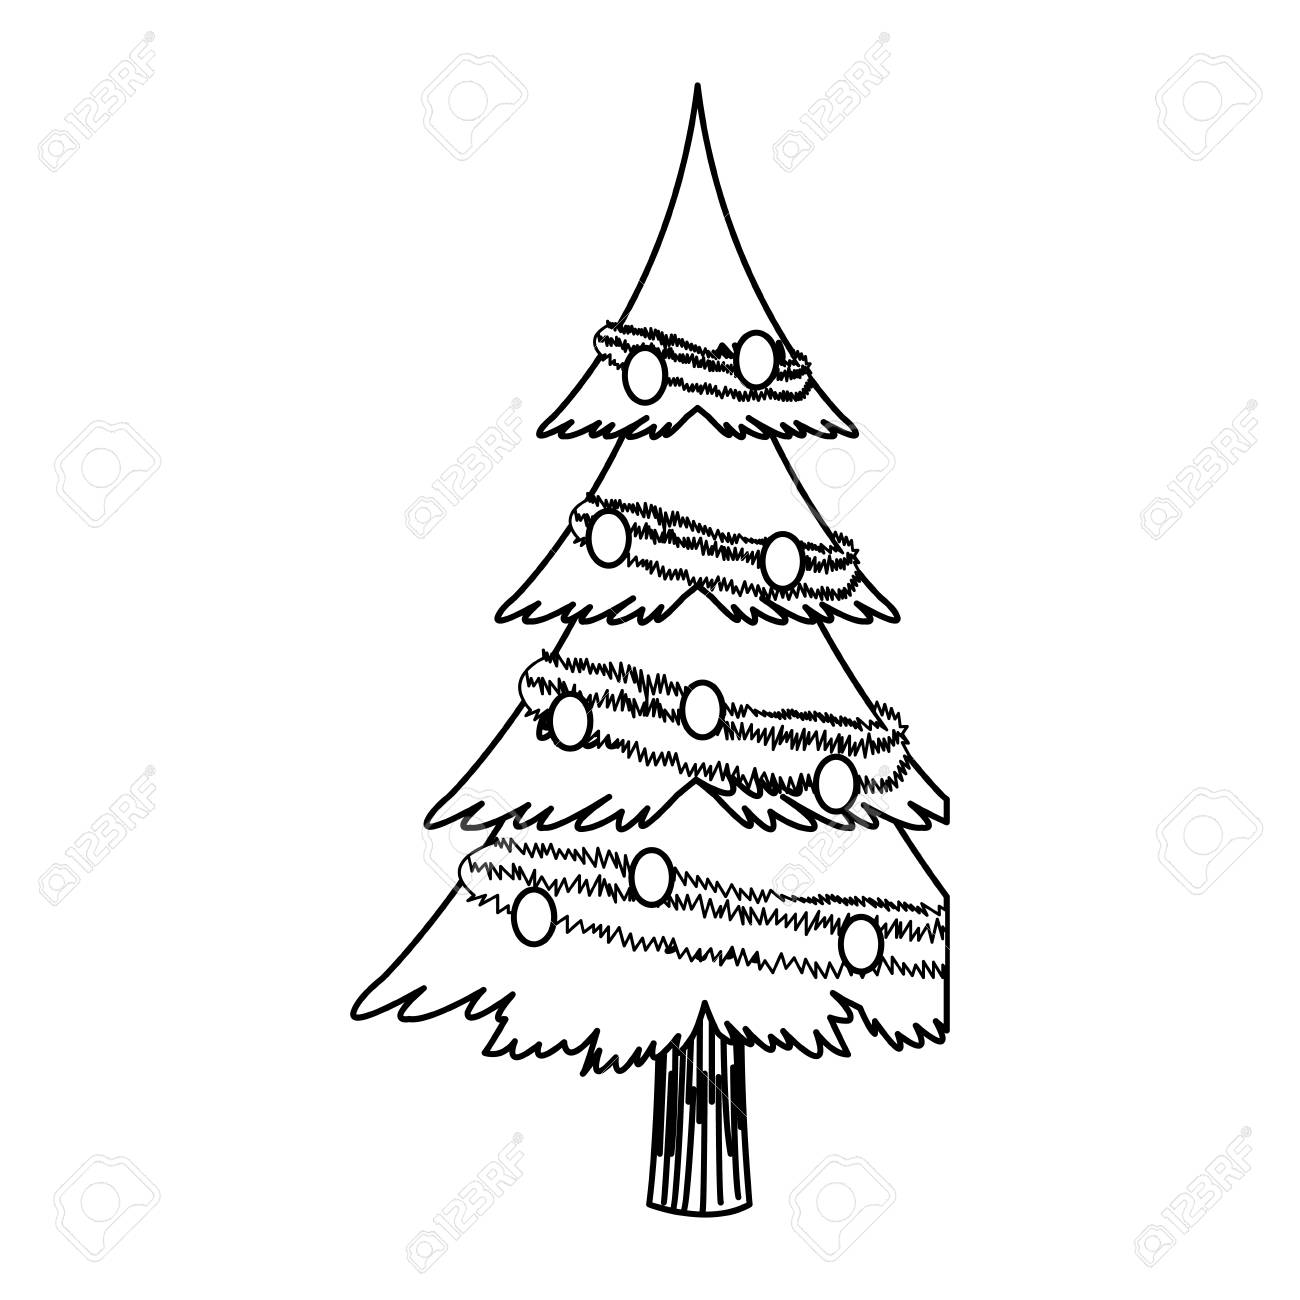 Cartoon Christmas Tree Decoration Celebration Outline Vector Royalty Free Cliparts Vectors And Stock Illustration Image 78542266 47 high quality collection of leafless tree outline by clipartmag. cartoon christmas tree decoration celebration outline vector